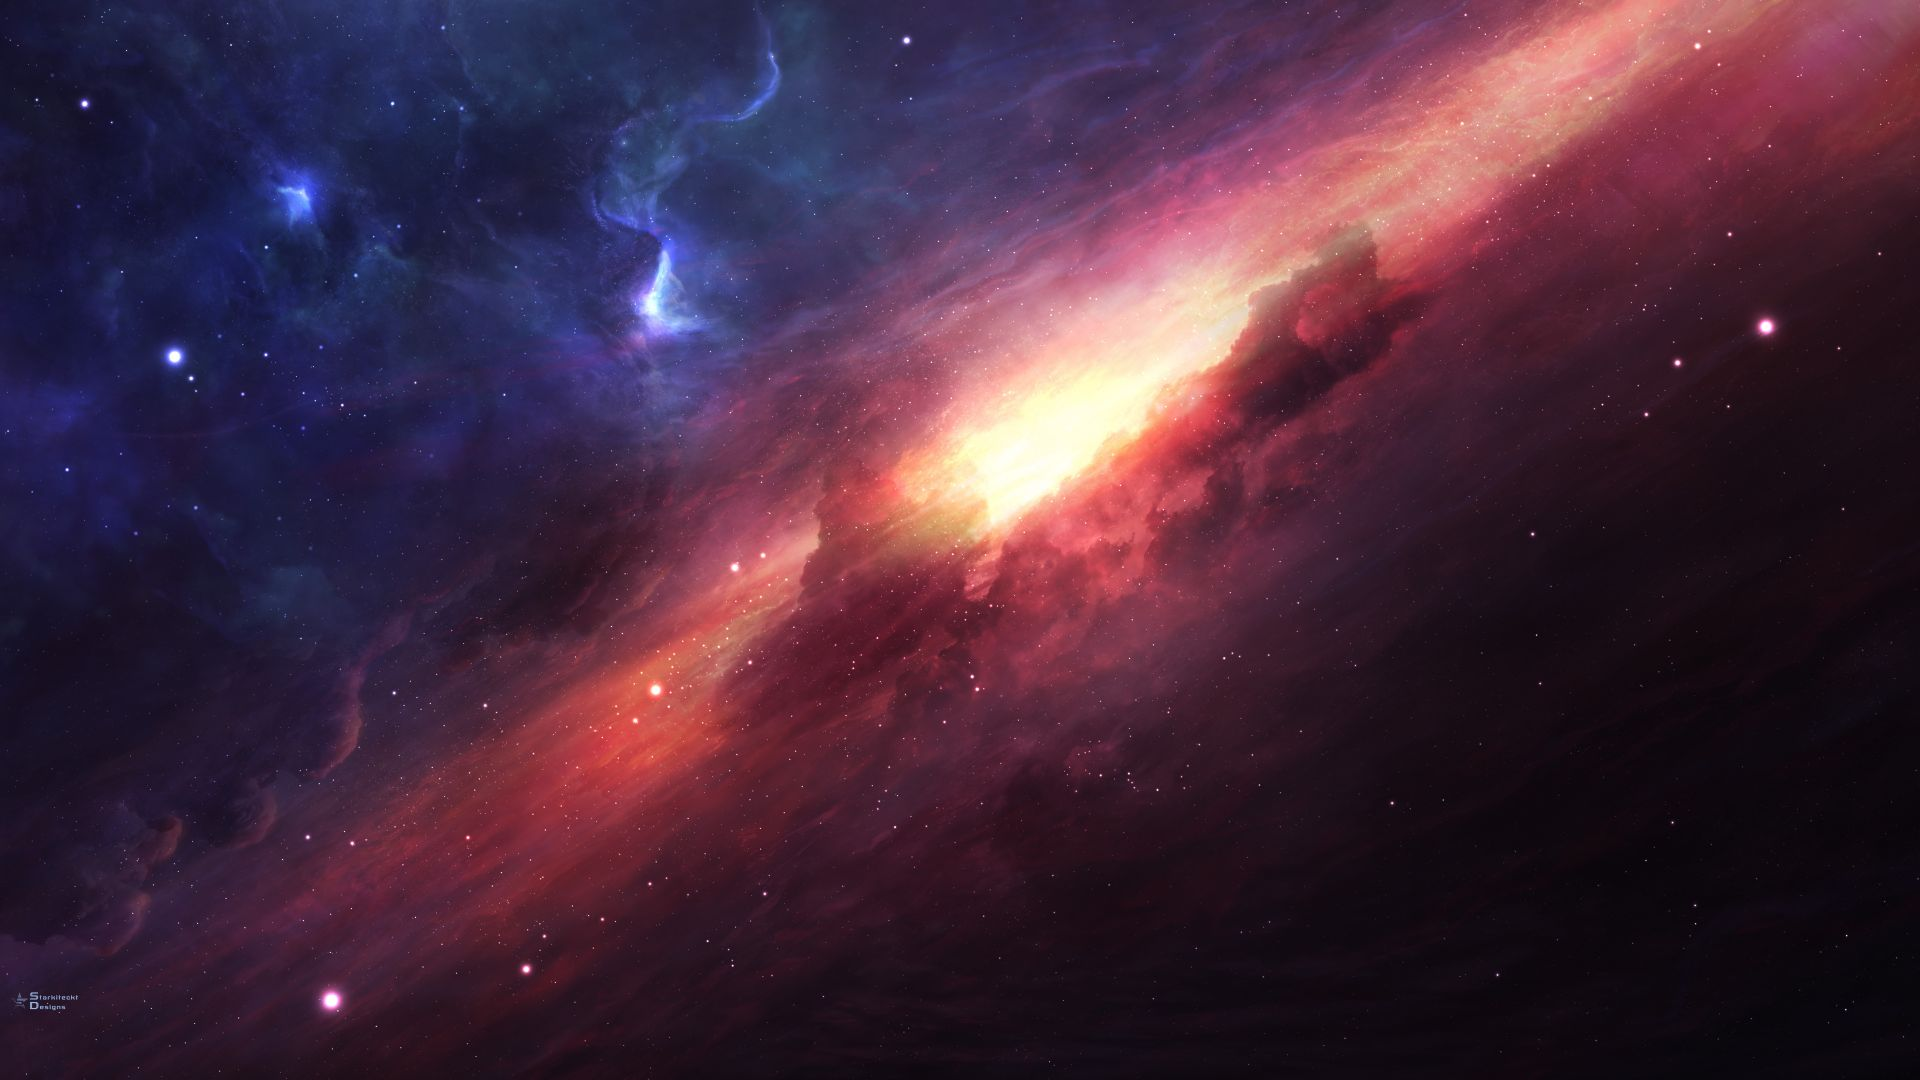 the characteristics and types of galaxies in our universe and the galaxies nearest to us